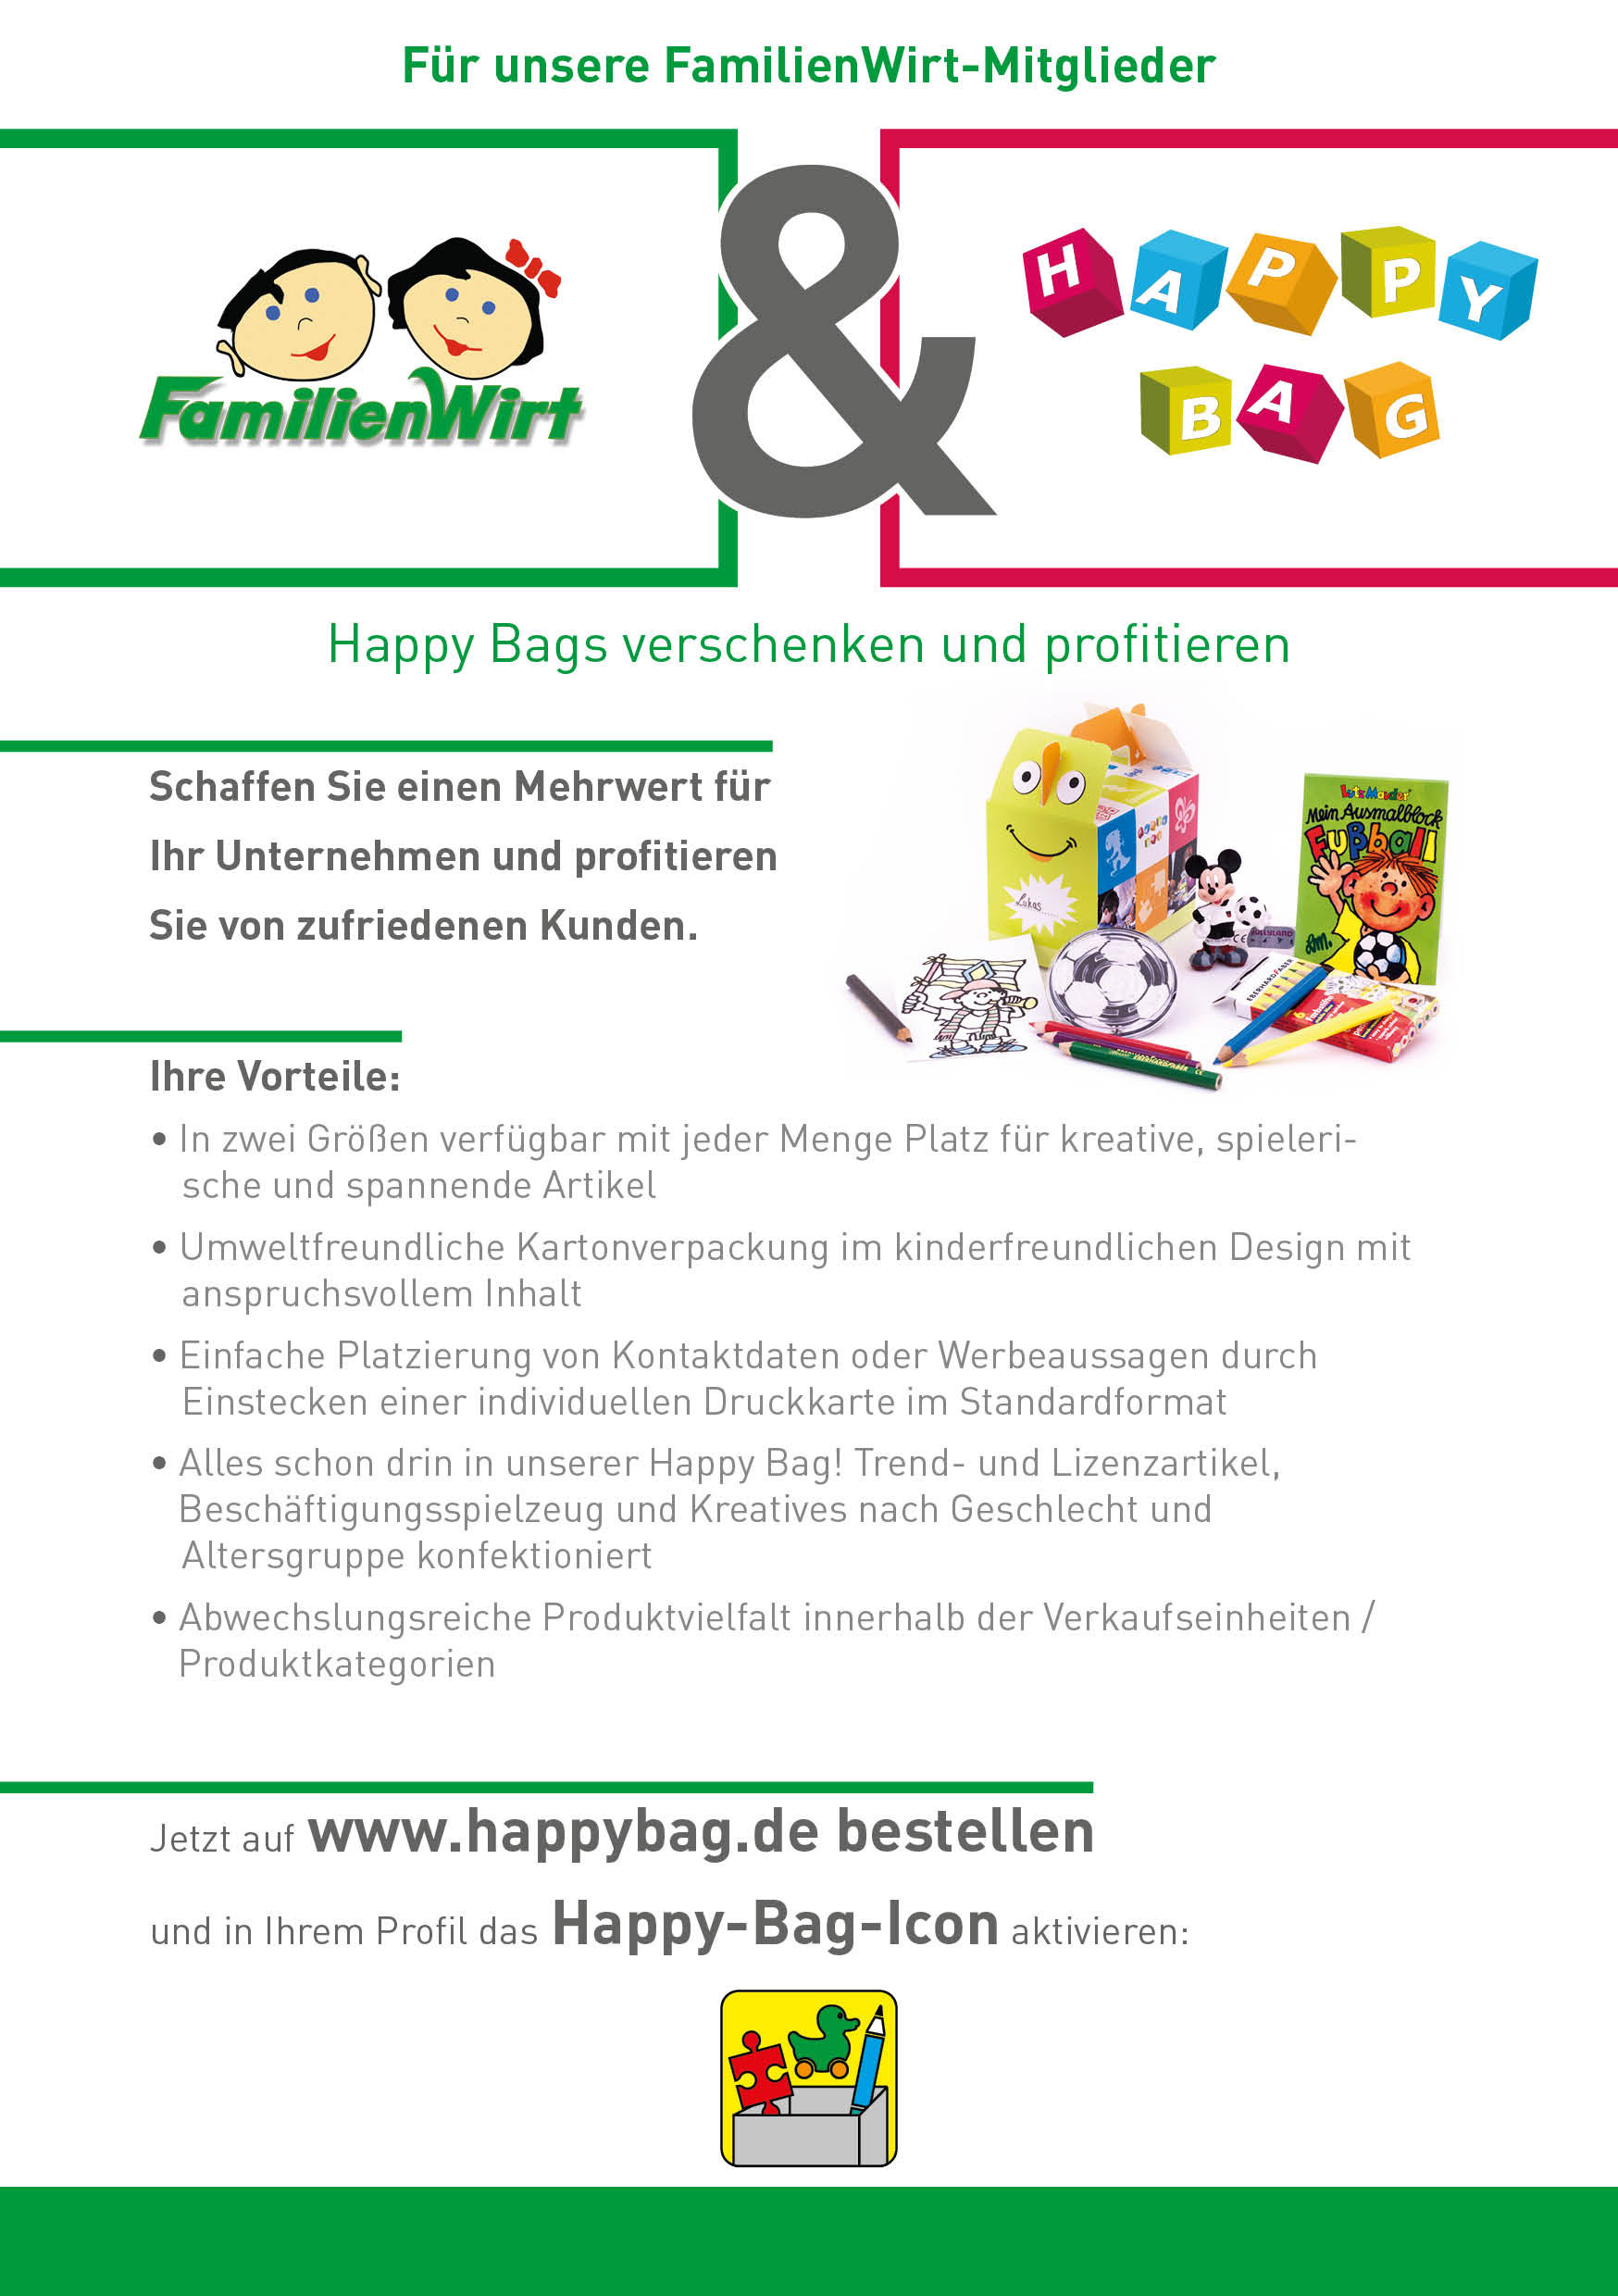 Flyer_Familienwirt_HappyBag_digital_final2